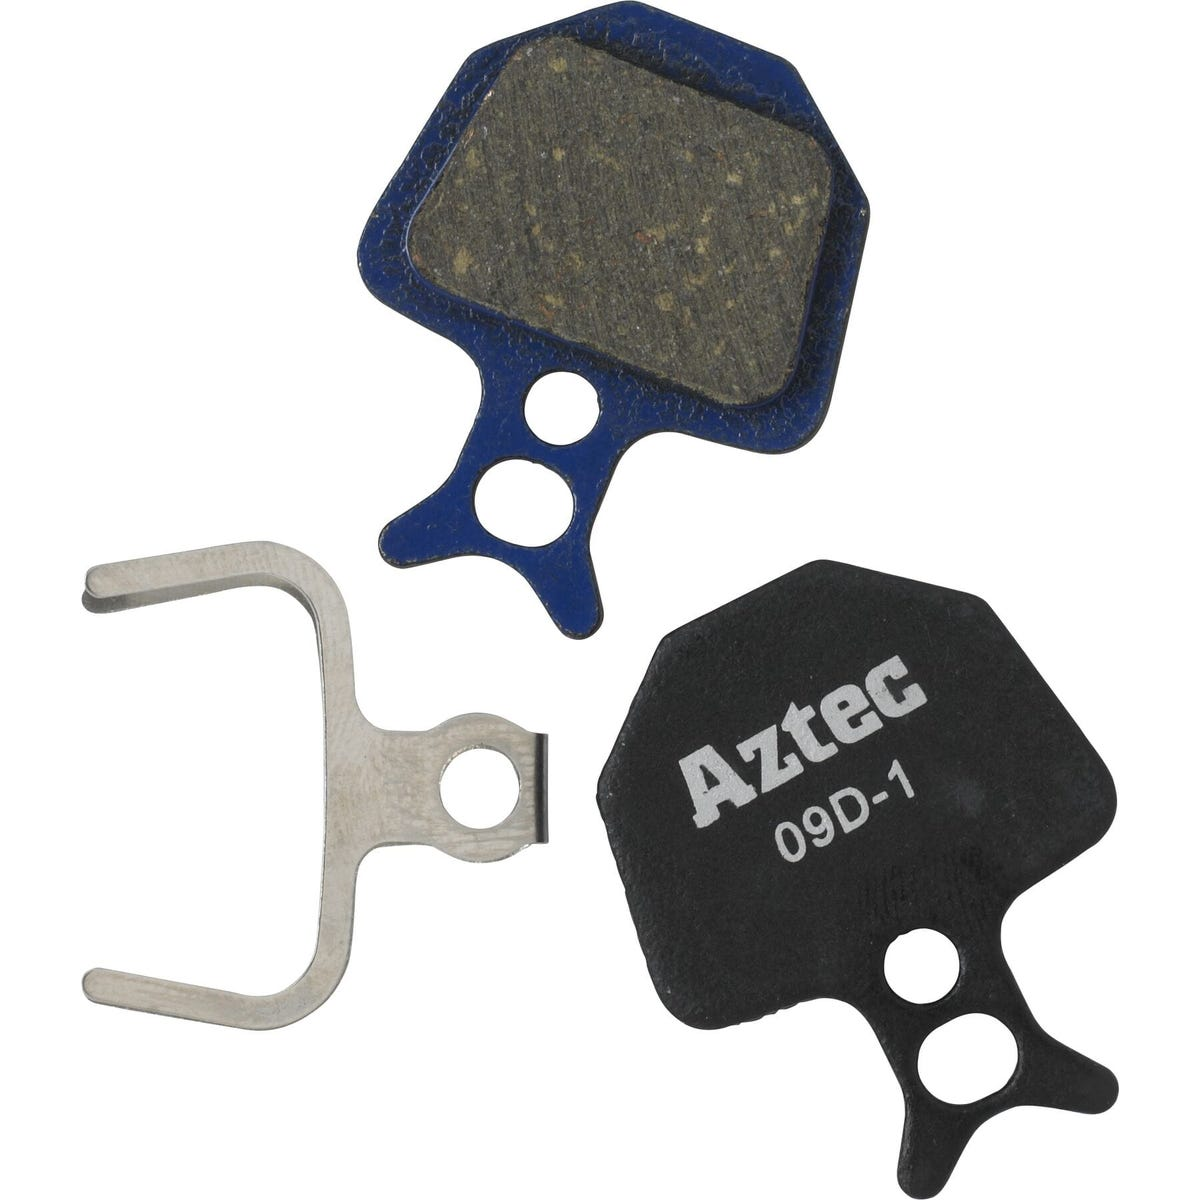 Aztec Organic disc brake pads for Formula Oro callipers